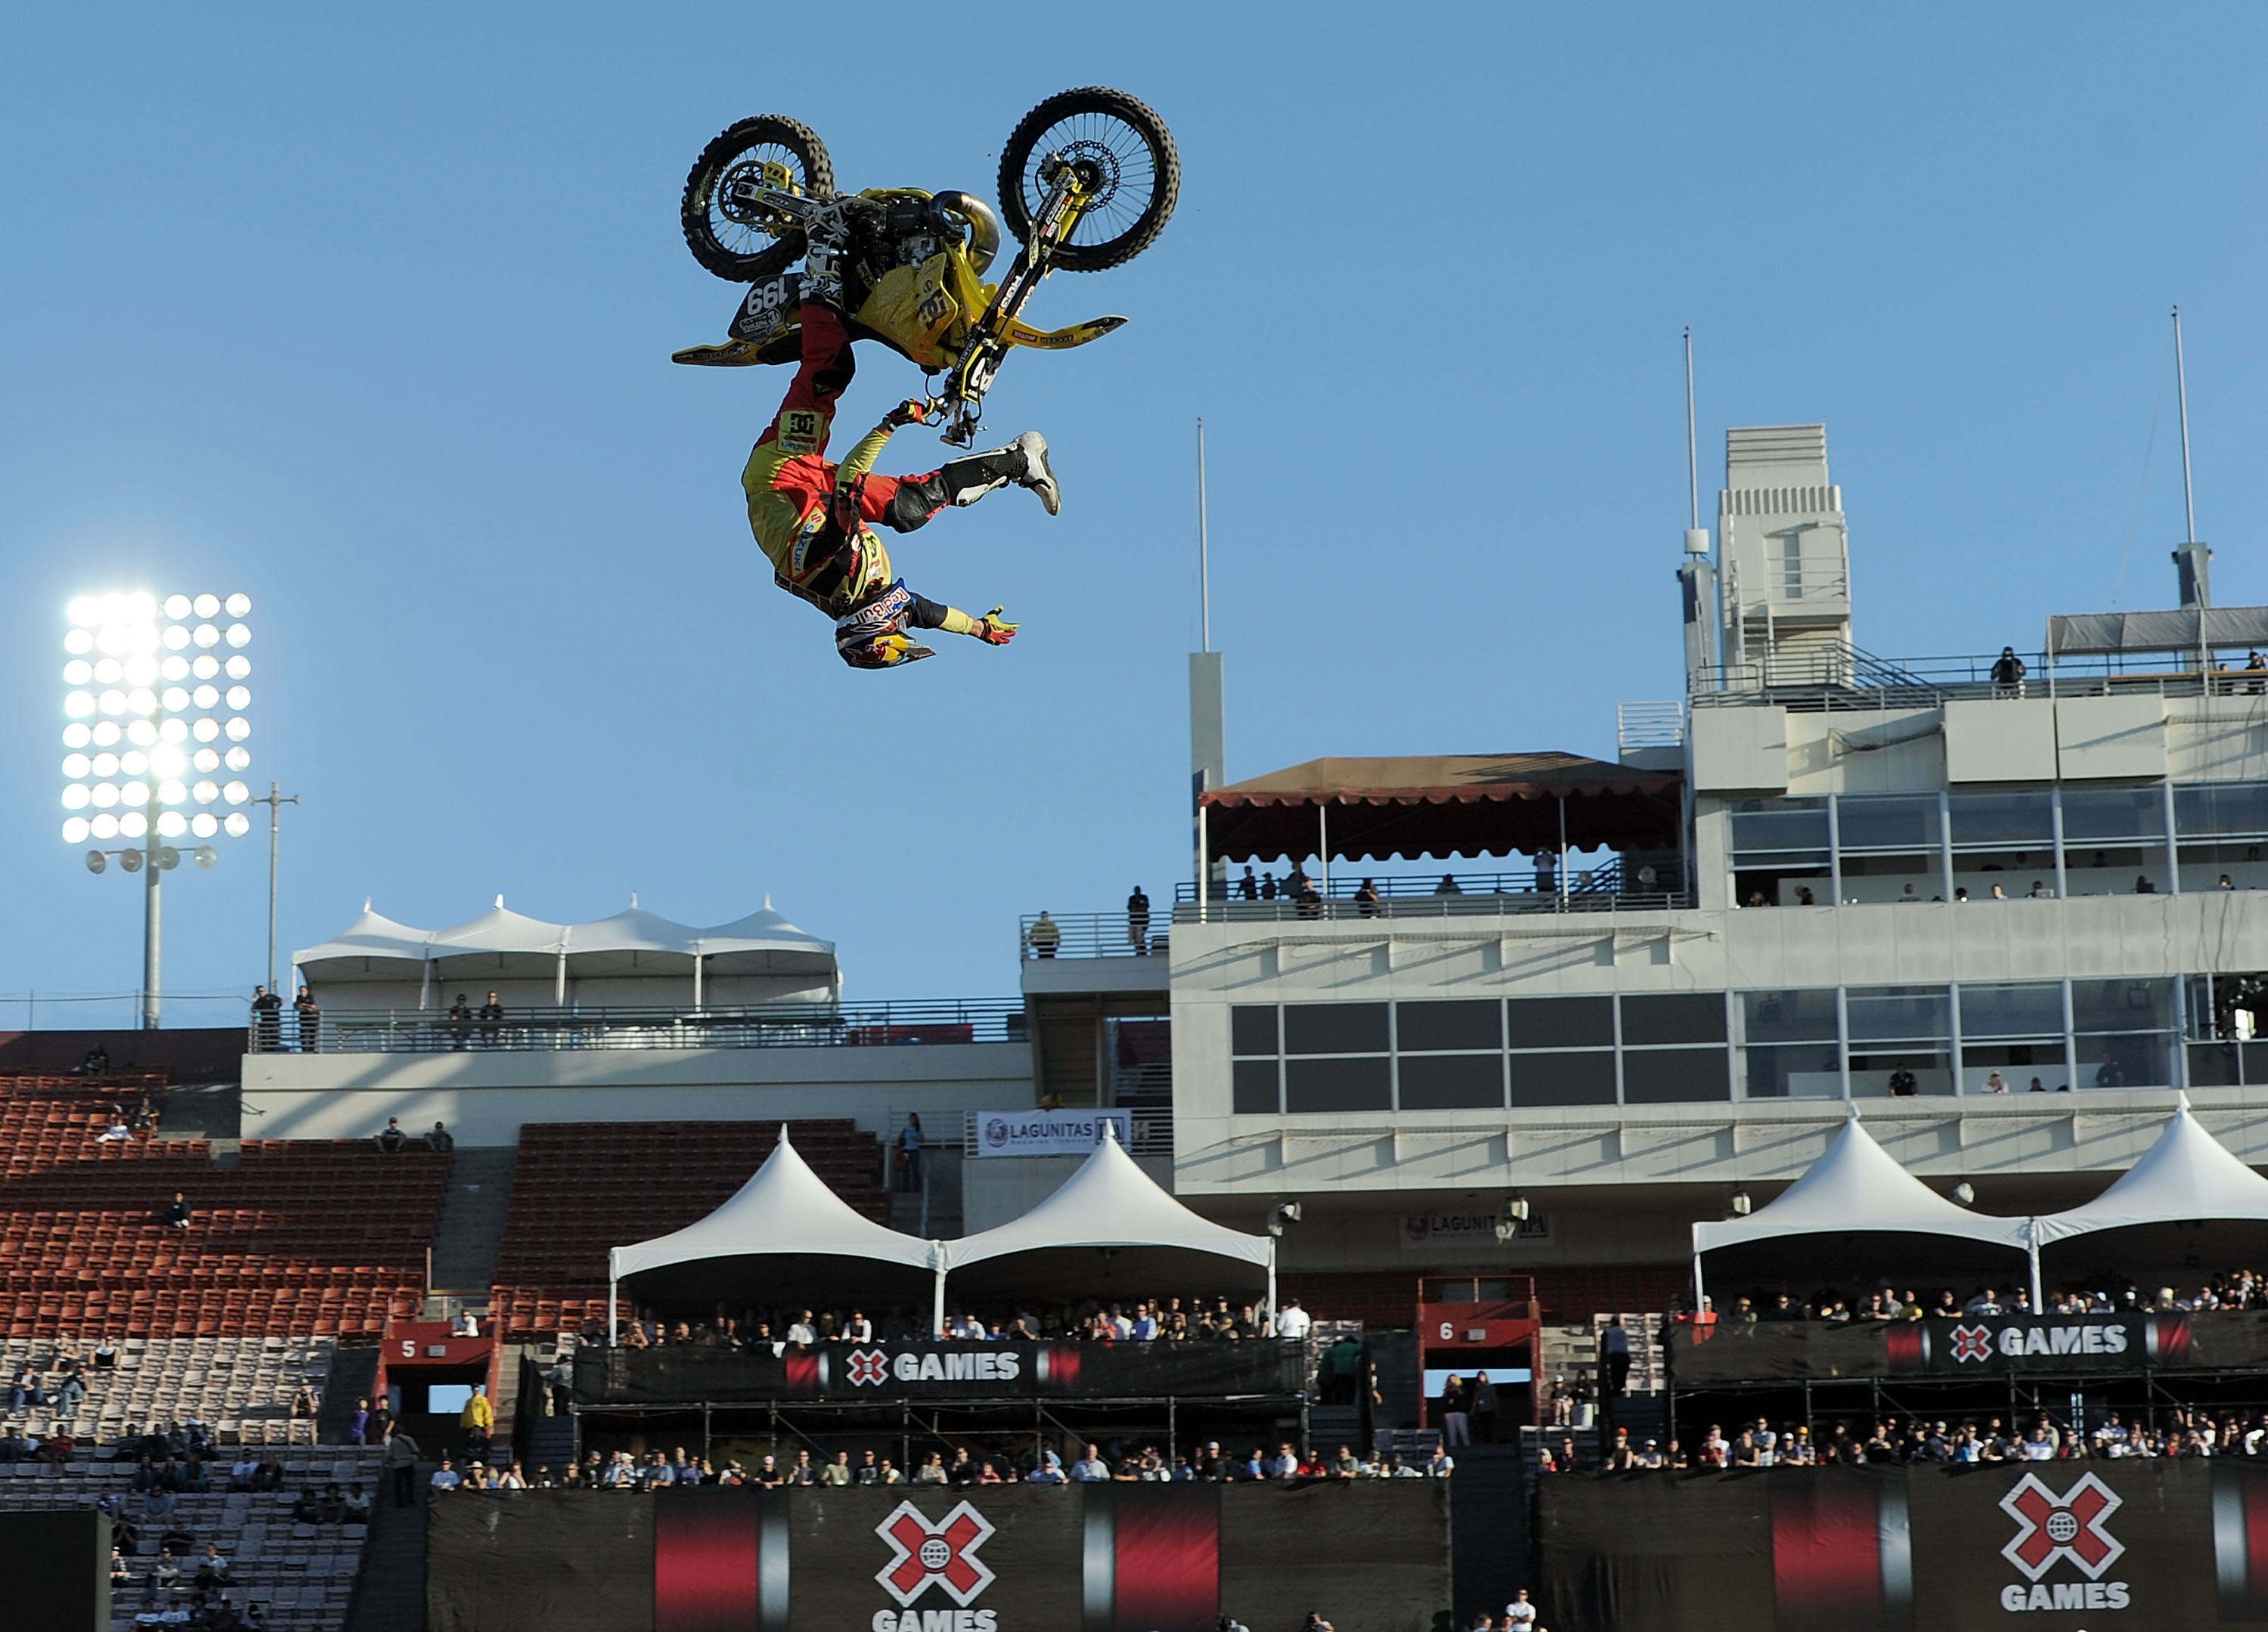 LOS ANGELES, CA - JULY 29:  Travis Pastrana competes in the Moto X Freestyle Final during X Games 16 at the LA Coliseum on July 29, 2010 in Los Angeles, California. Pastrana would win the gold medal.  (Photo by Harry How/Getty Images)